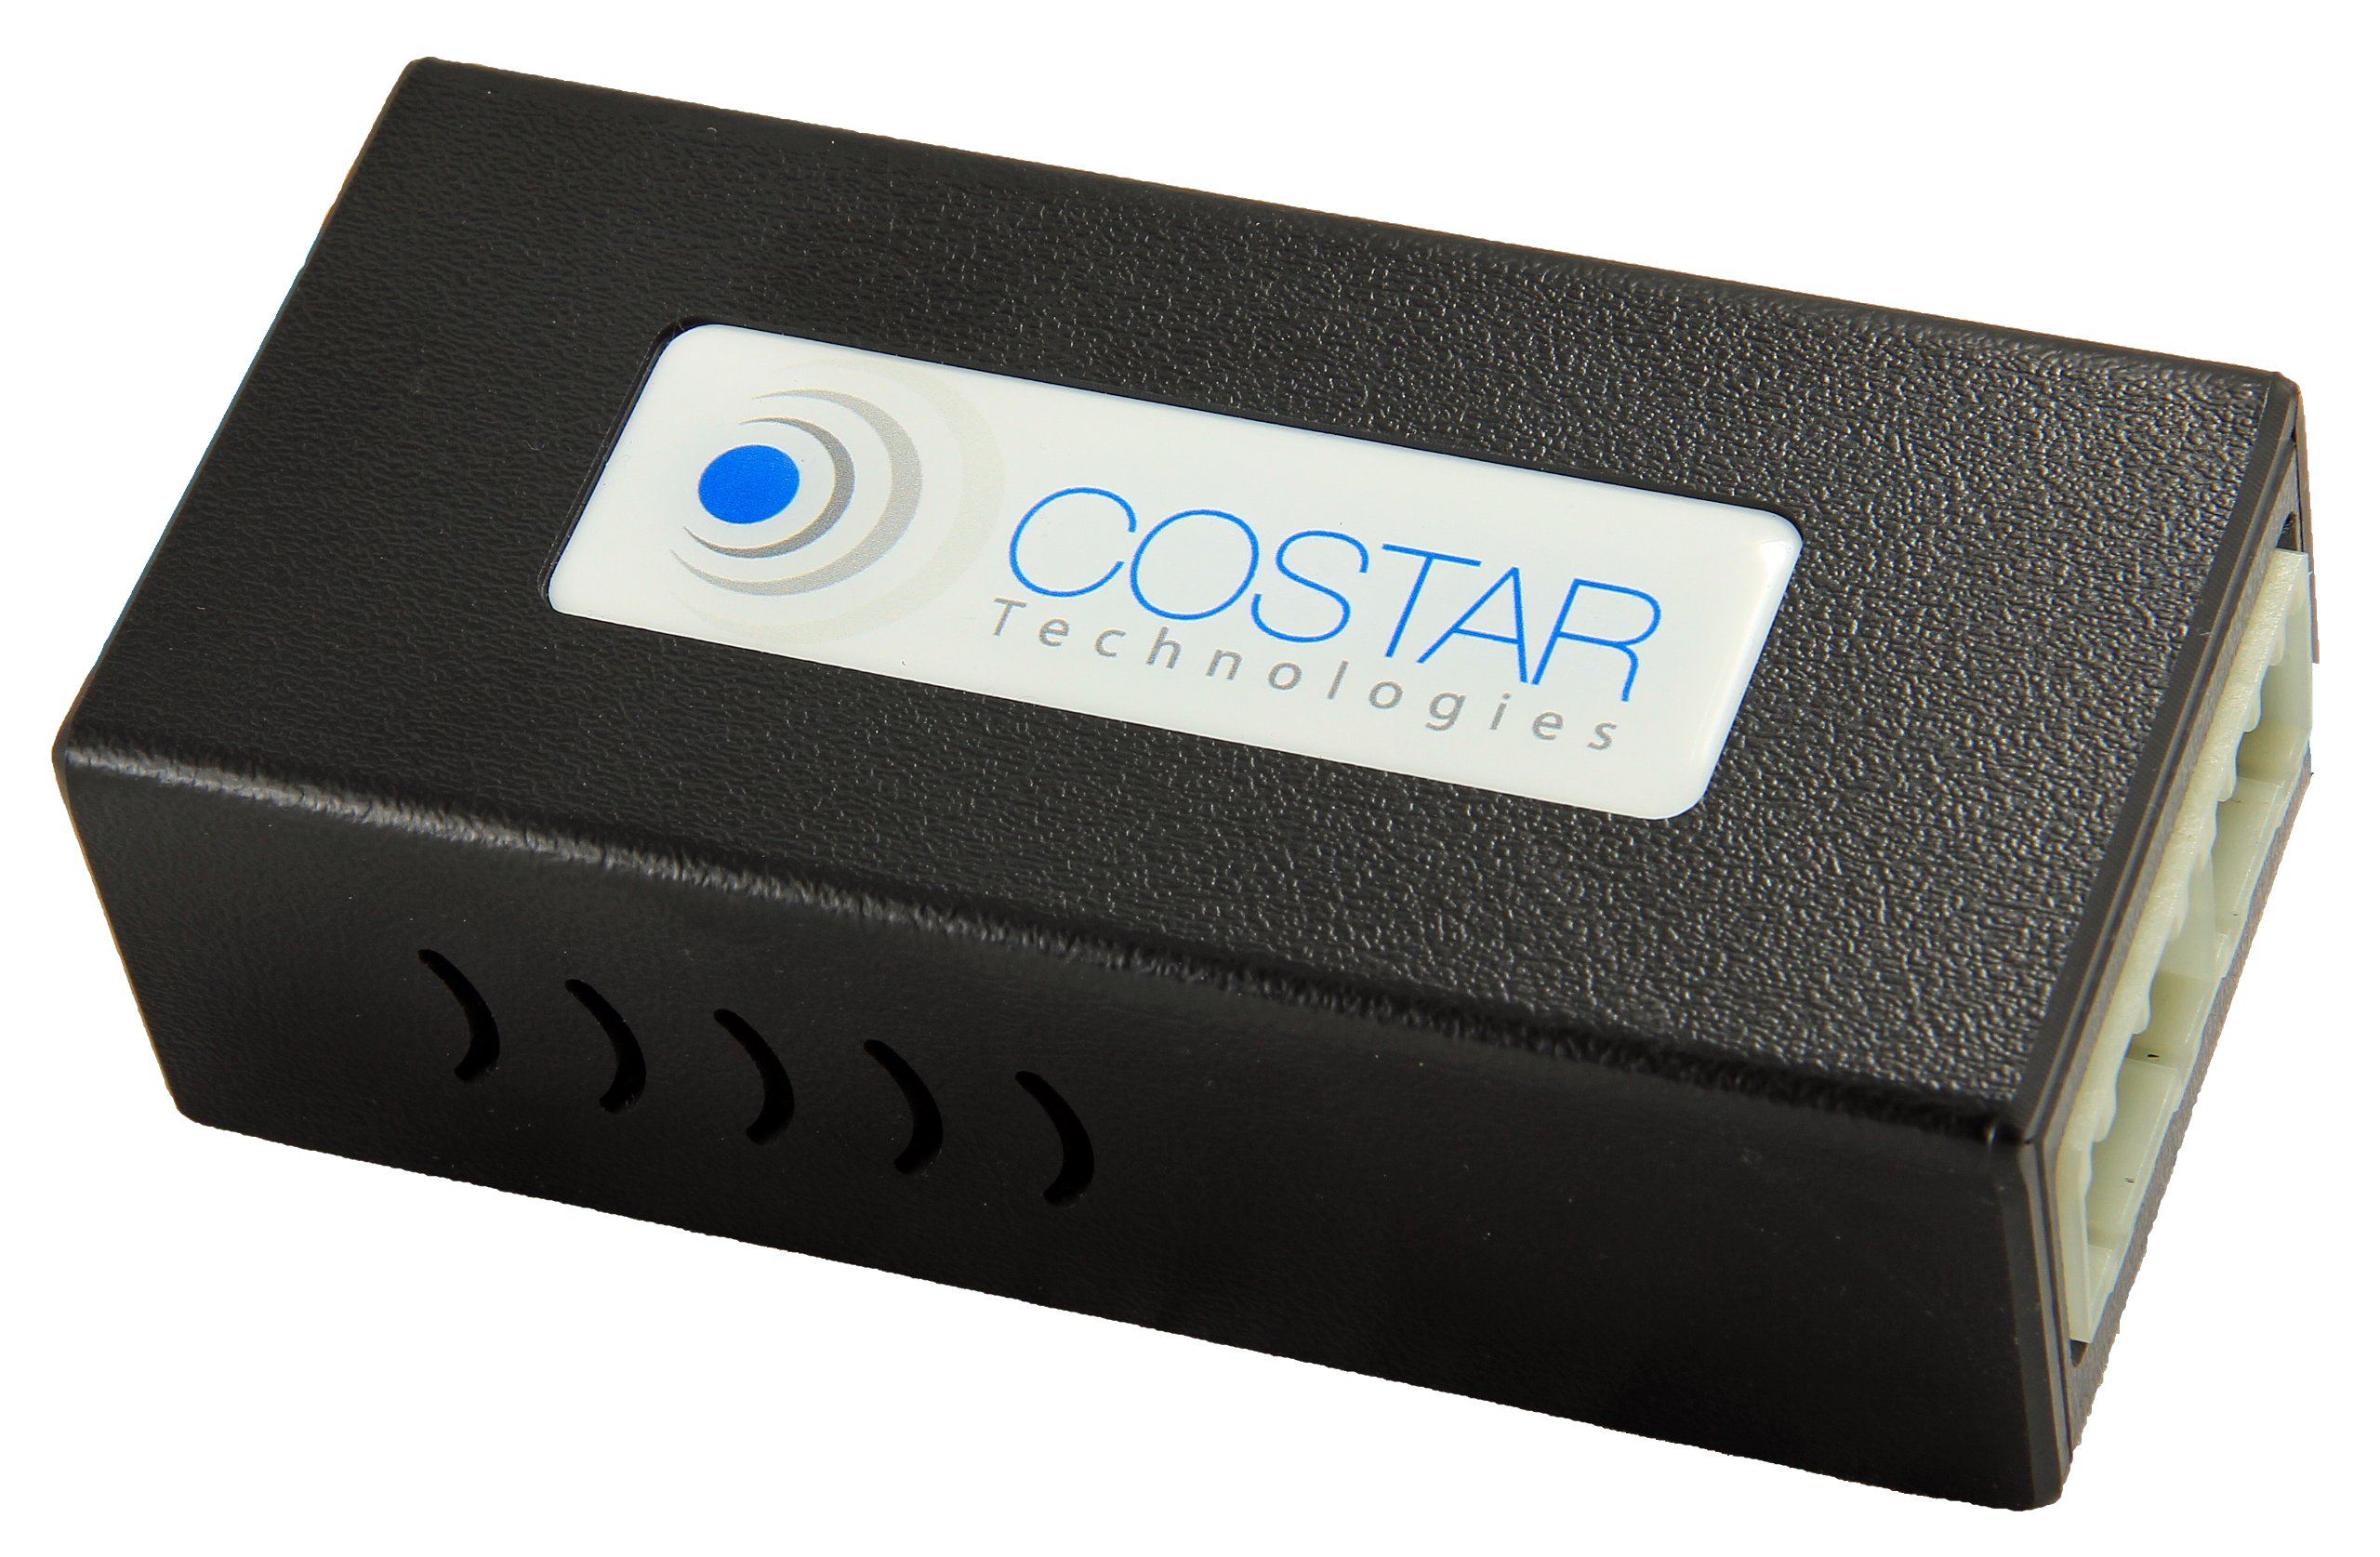 Costar Bluestar Hands Free Bluetooth Kit for GM Vehicles